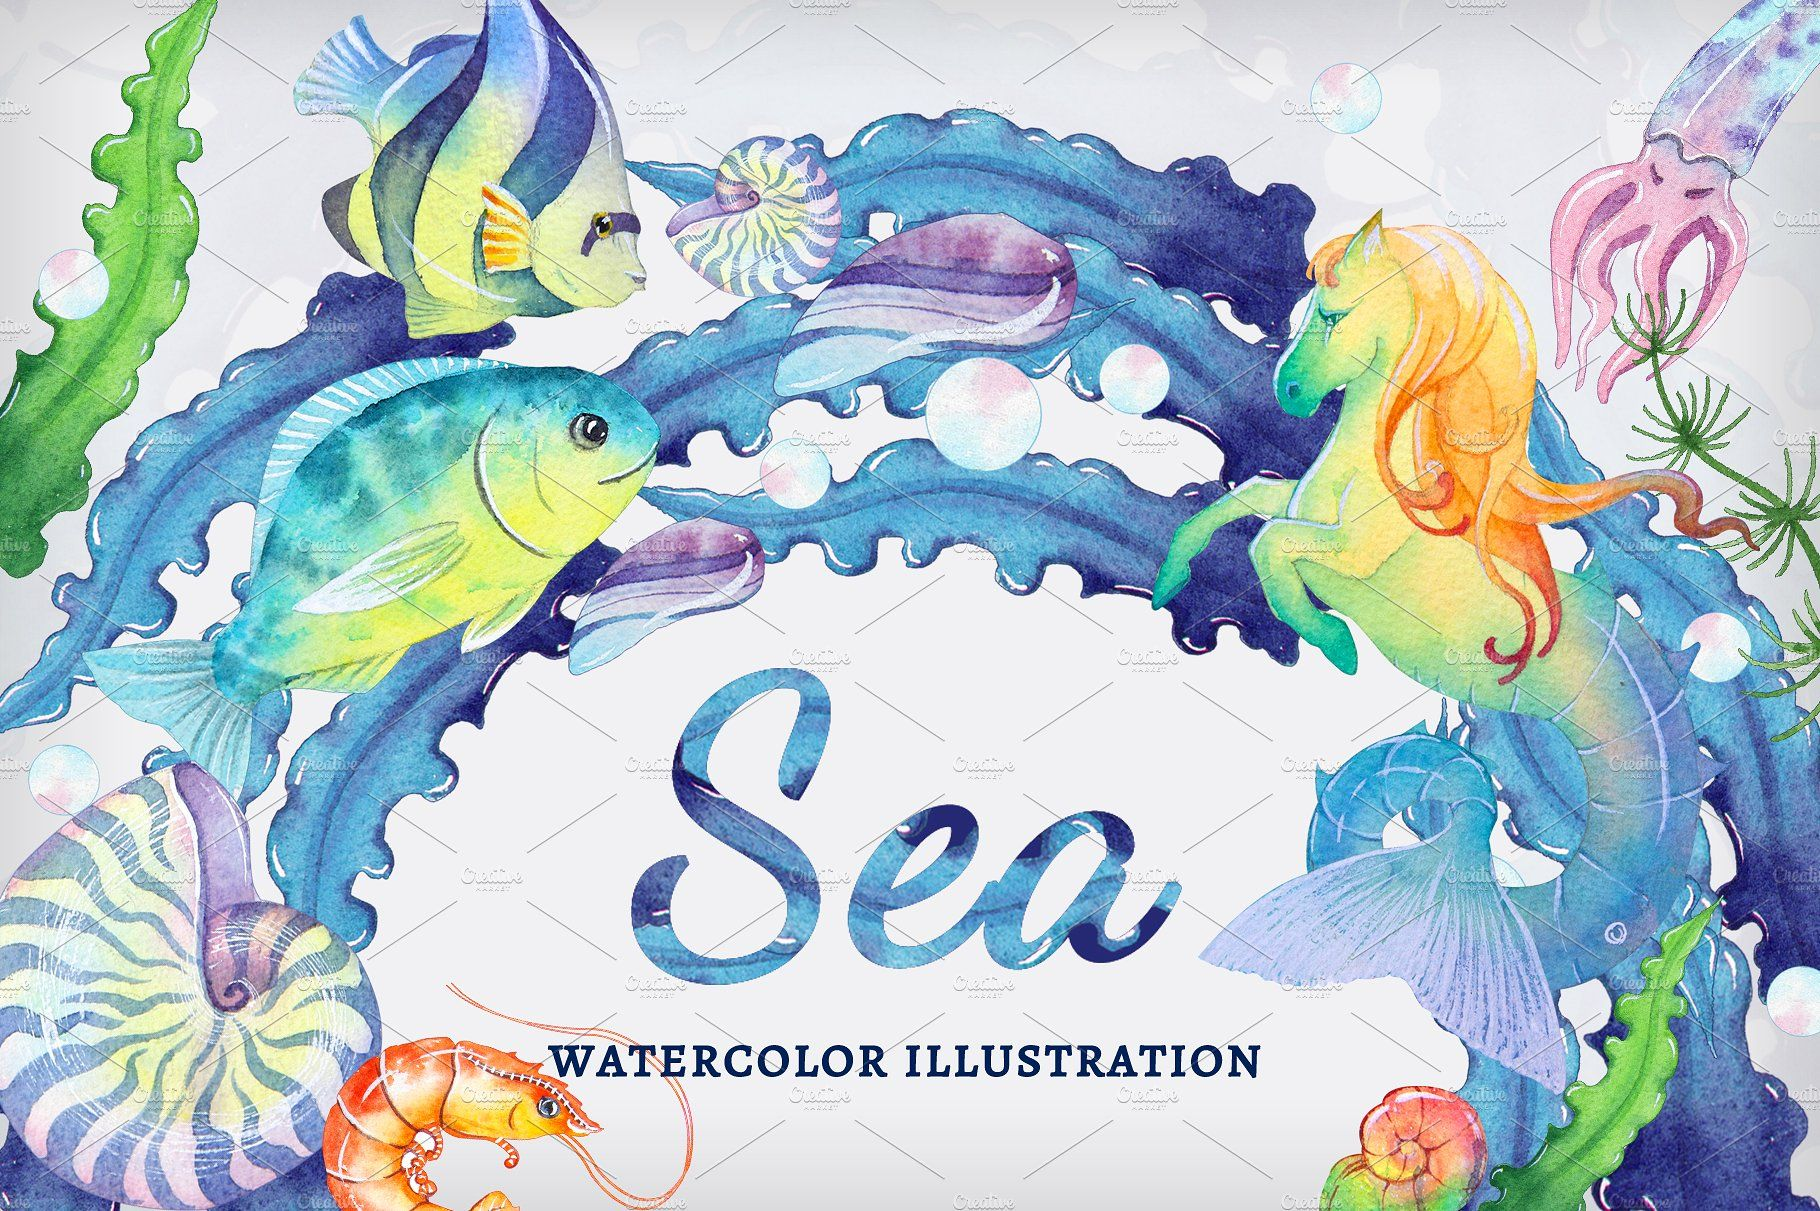 Sea Set Watercolor Illustrations Rgb Dpi Transparent